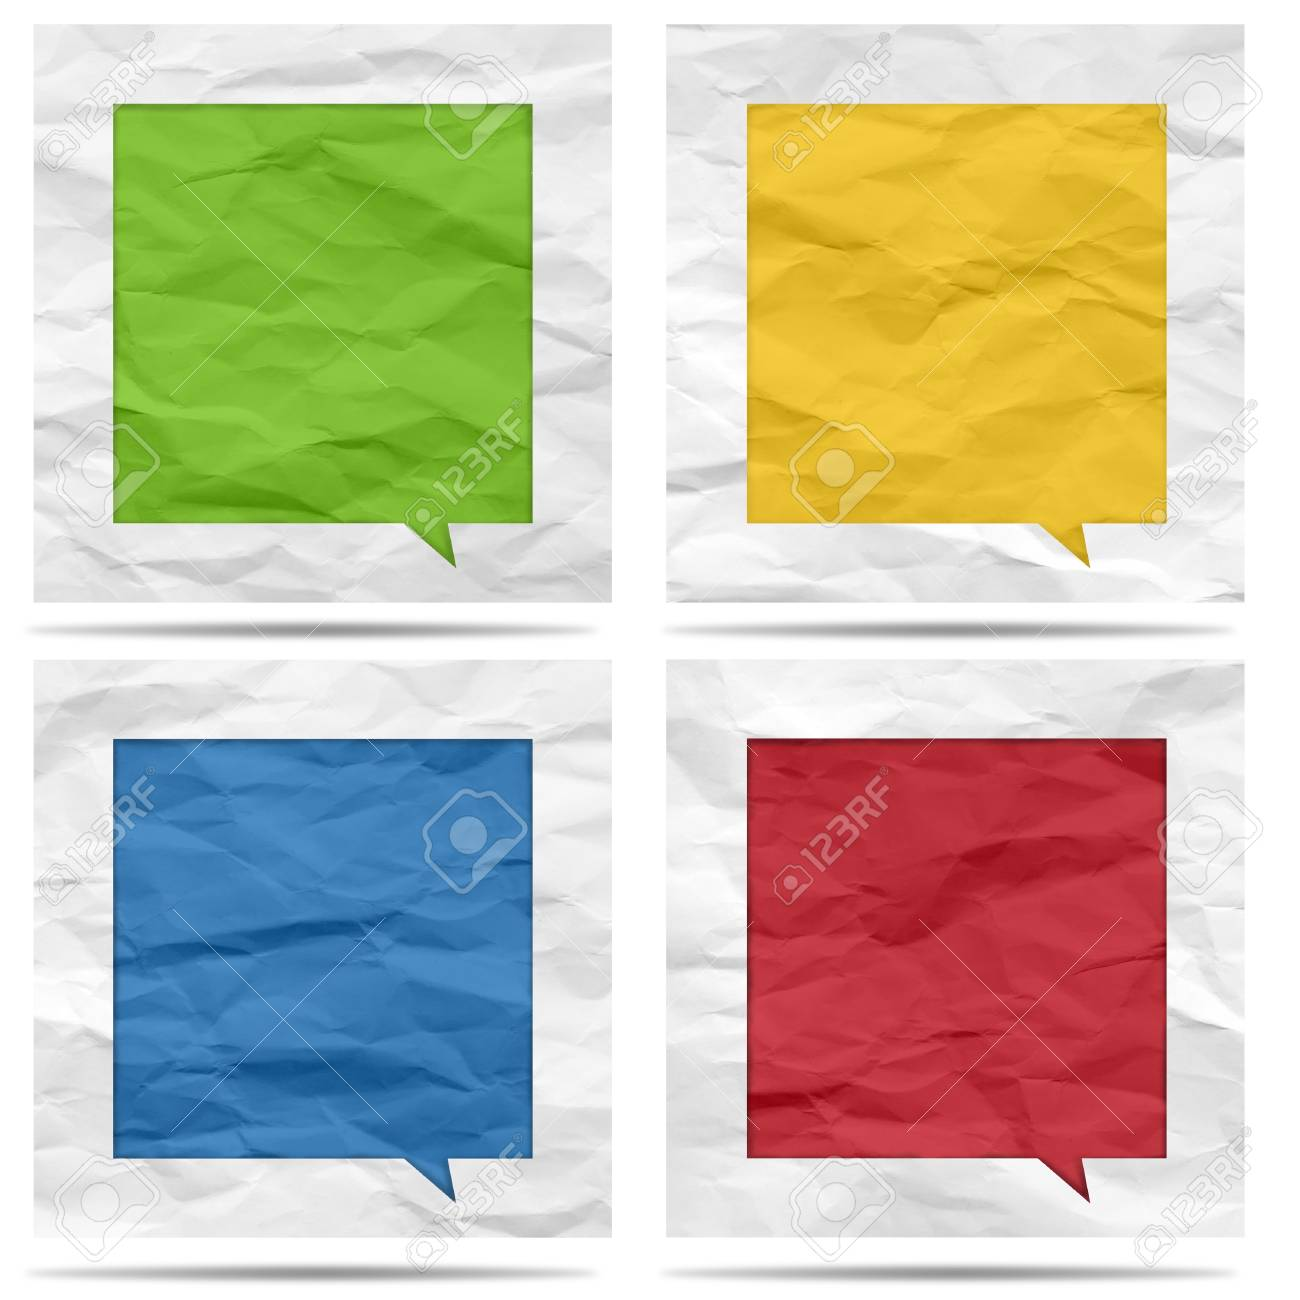 Crumpled paper bubble for speech Stock Photo - 19927831